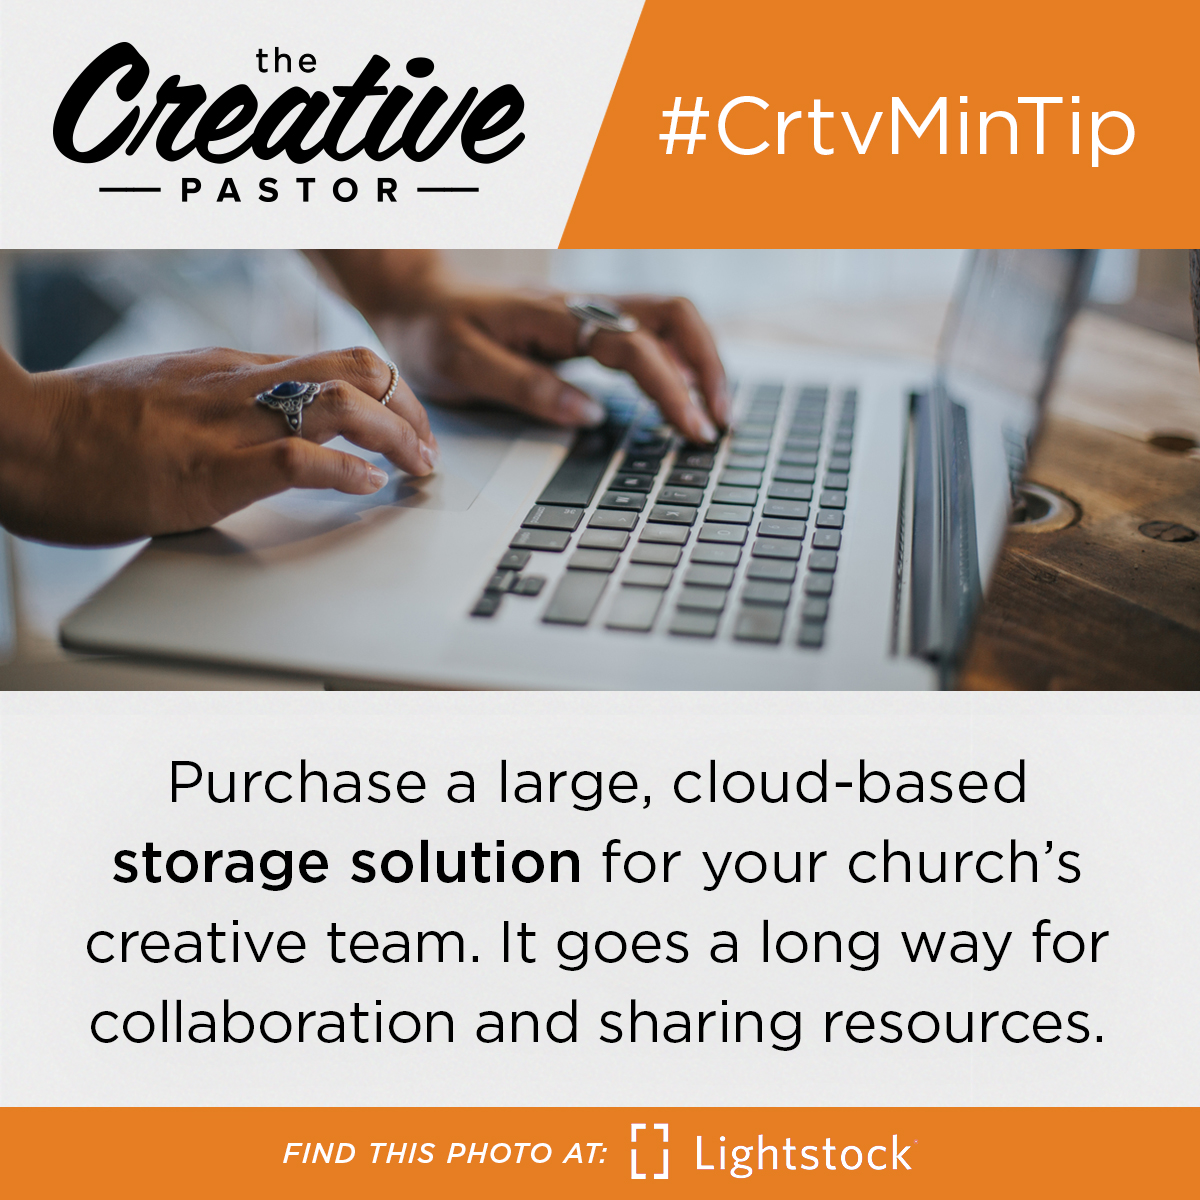 #CrtvMinTip: Purchase a large, cloud-based storage solution for your church's creative team. It goes a long way for collaboration and sharing resources.